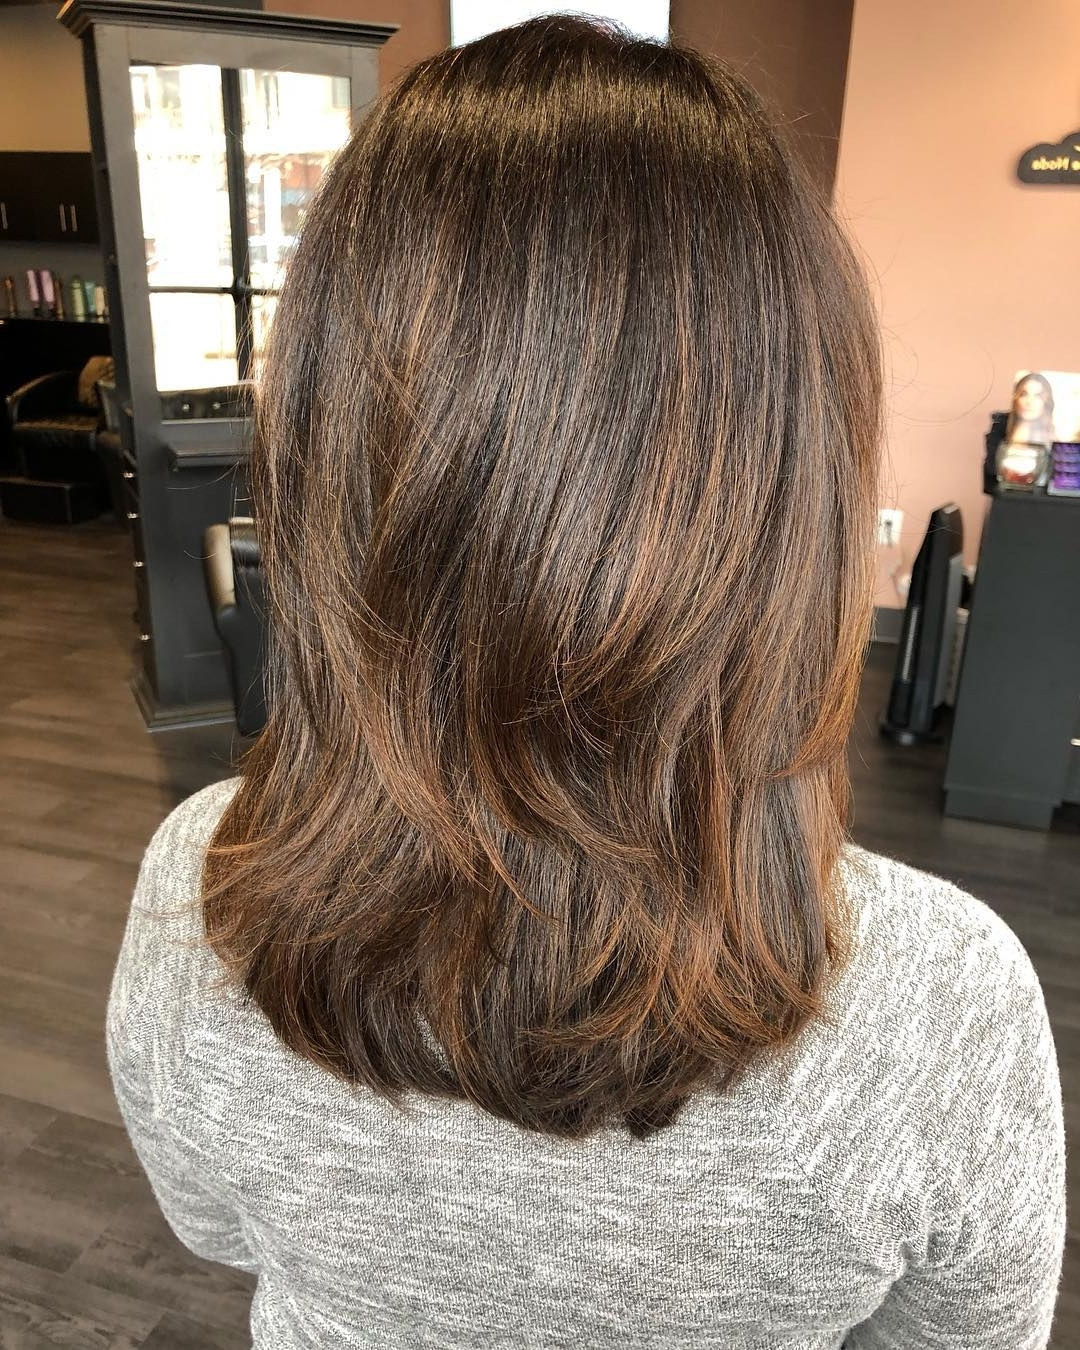 Medium Length Hairstyles For Thick Hair With Bangs Go Medium Length Hairstyles With Bangs Thick Hair